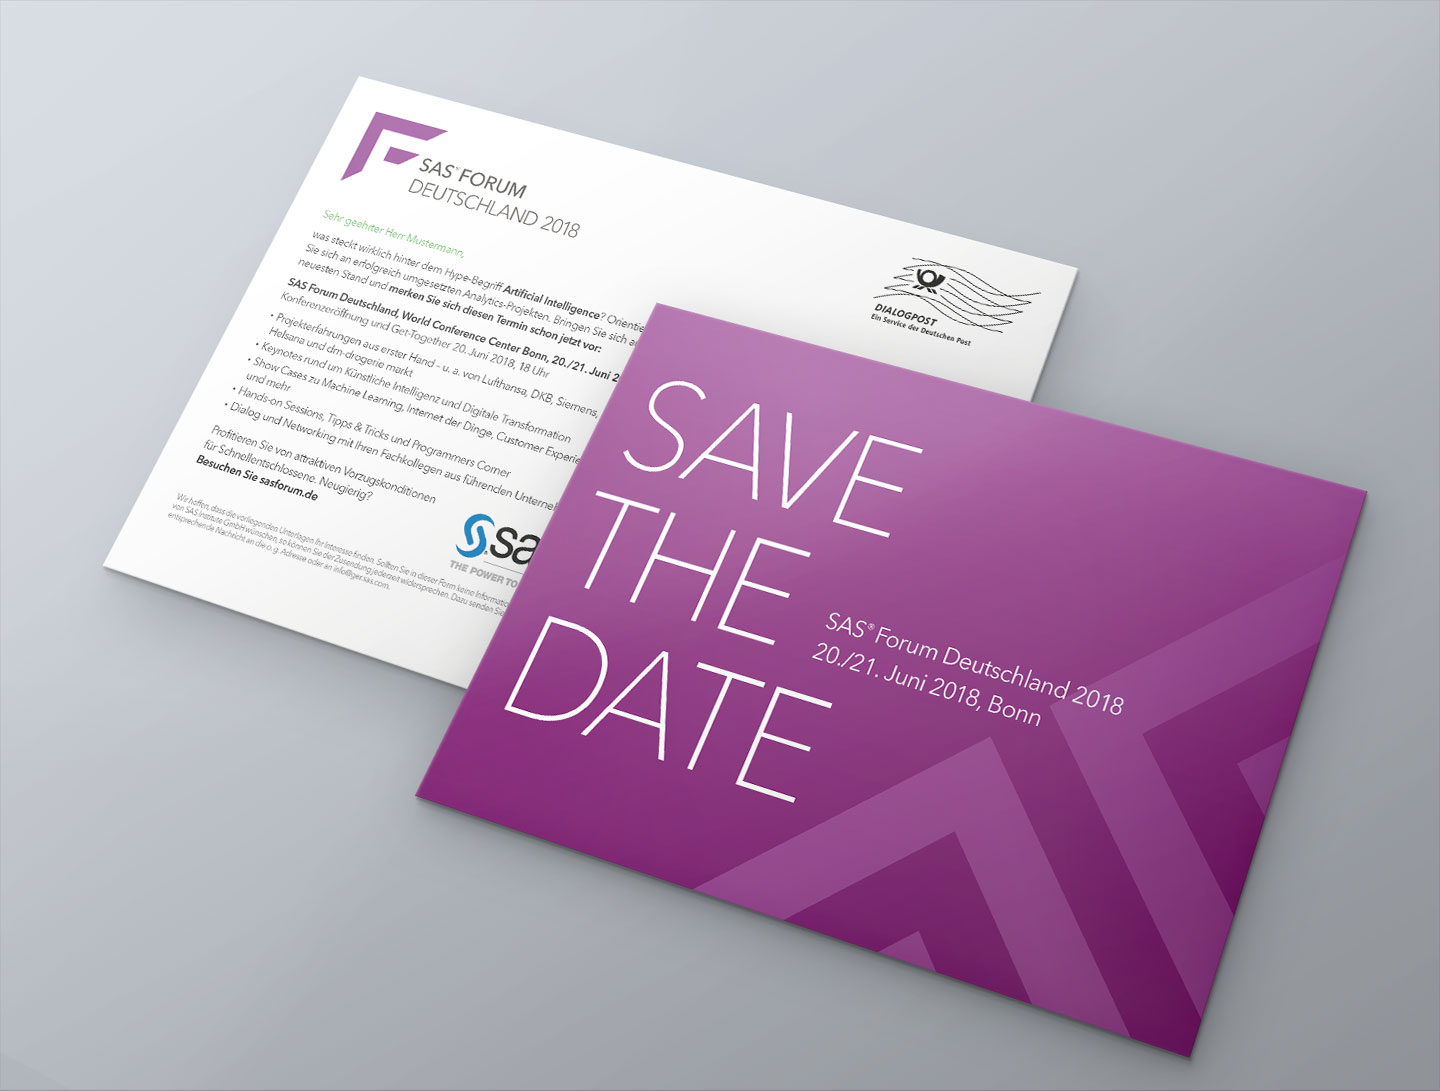 P12 Referenz SAS Forum 2018 Direct Mailing Save the Date Einladung